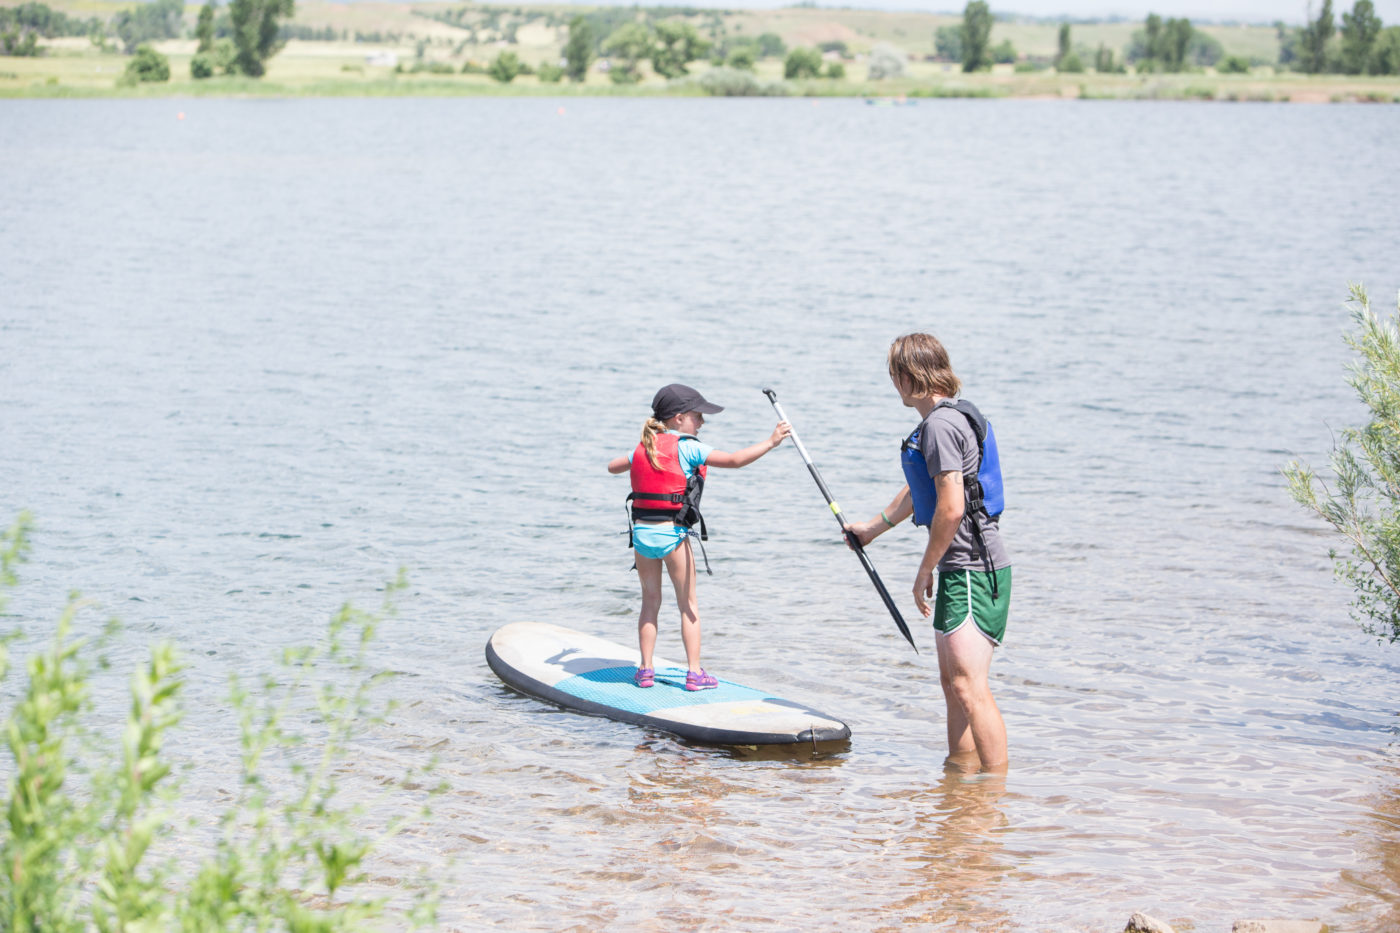 Young child stand up paddleboarding